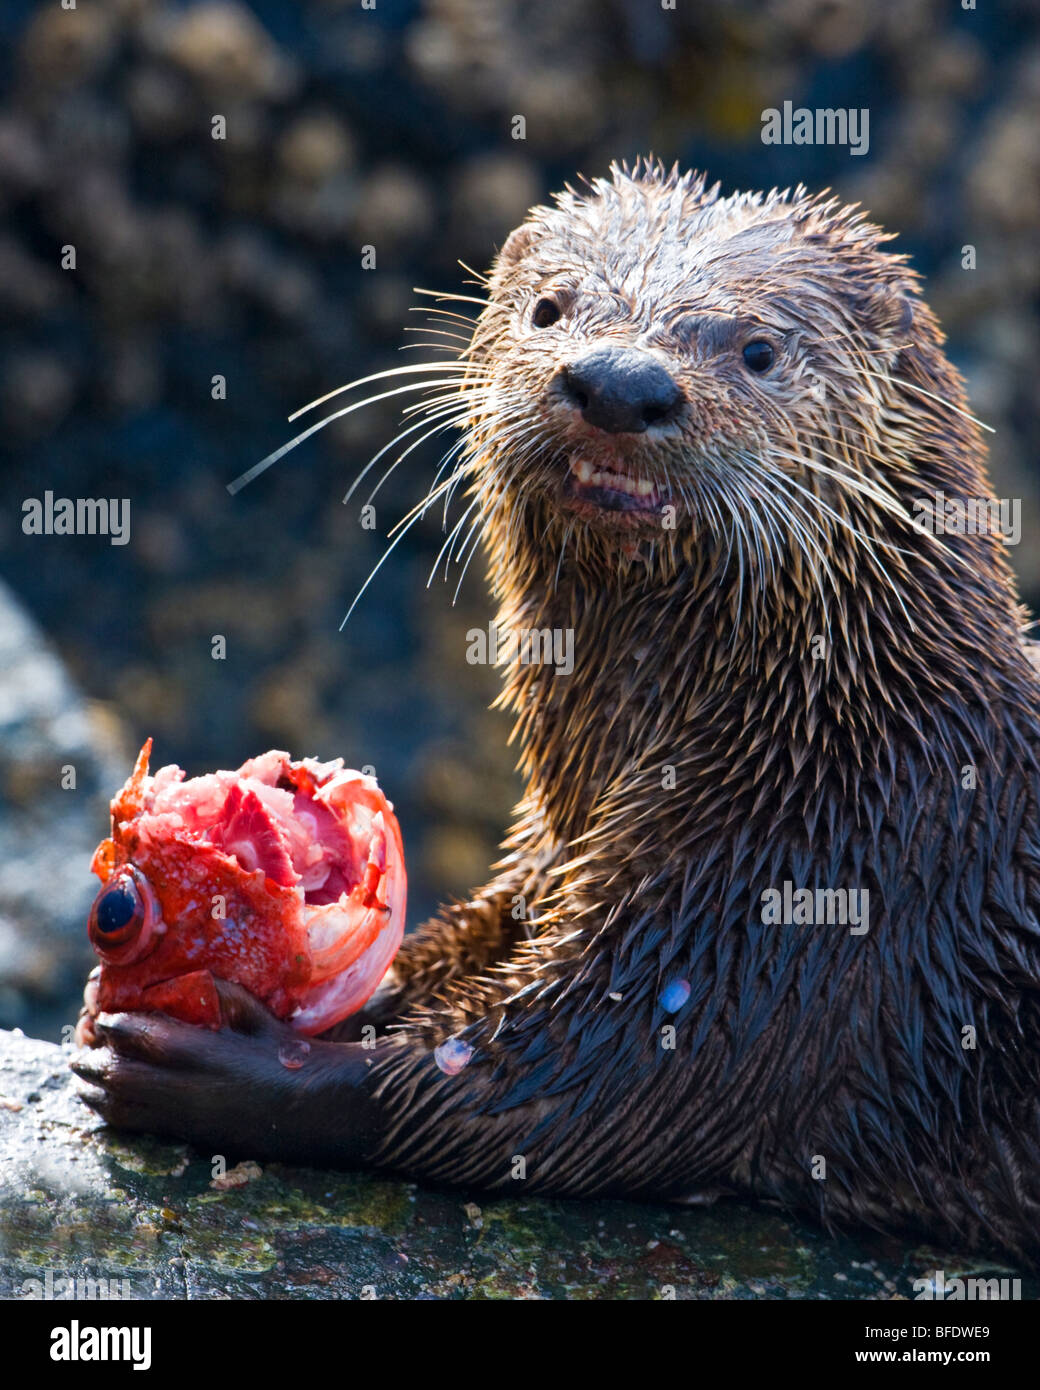 River otter (Lontra canadensis) eating a fish in Victoria, Vancouver Island, British Columbia, Canada - Stock Image